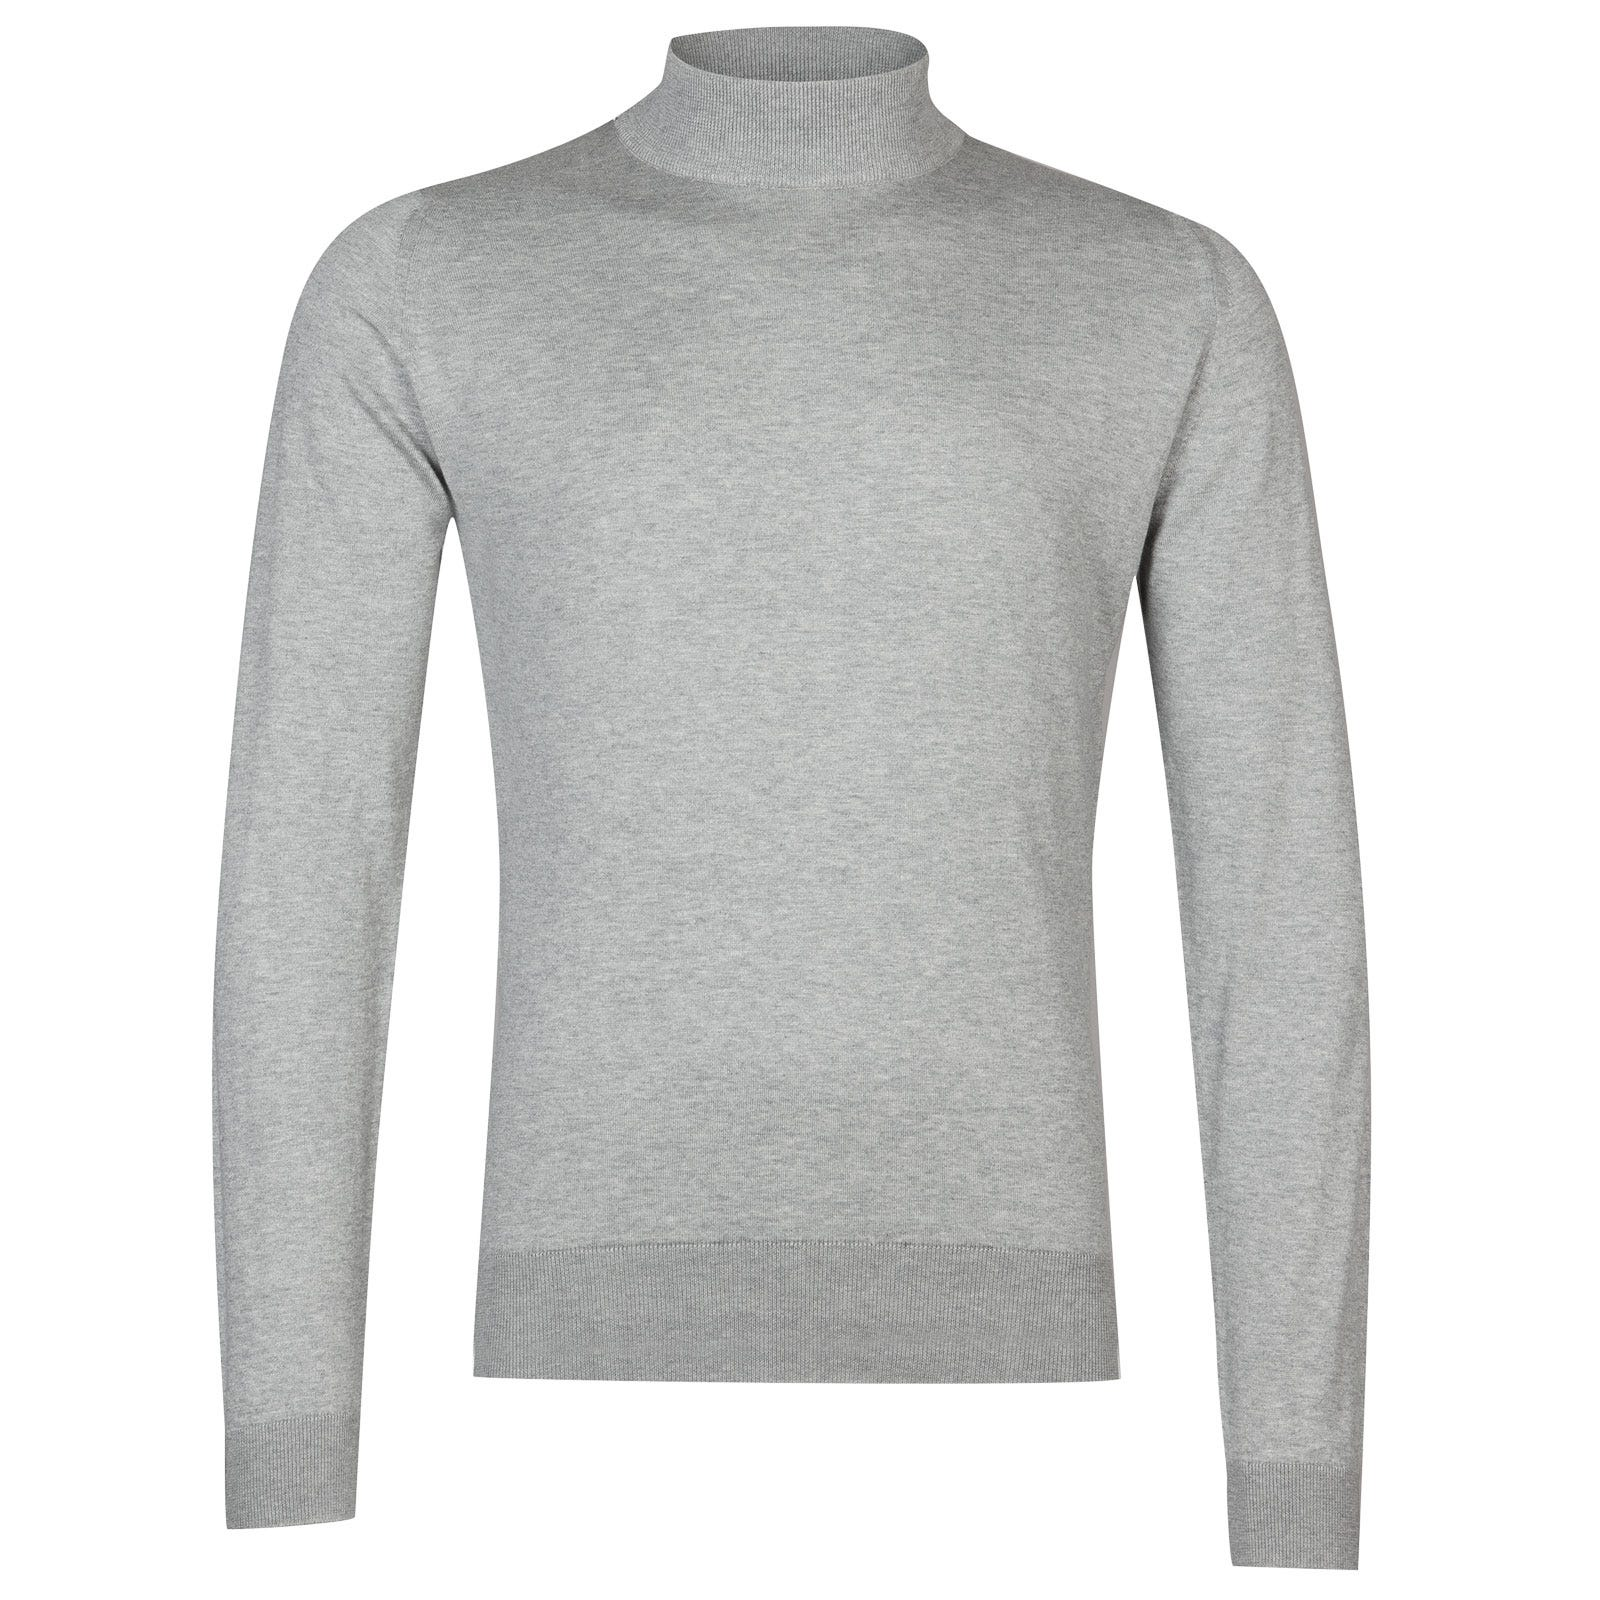 John Smedley Bradgate Sea Island Cotton Pullover in Silver-XL